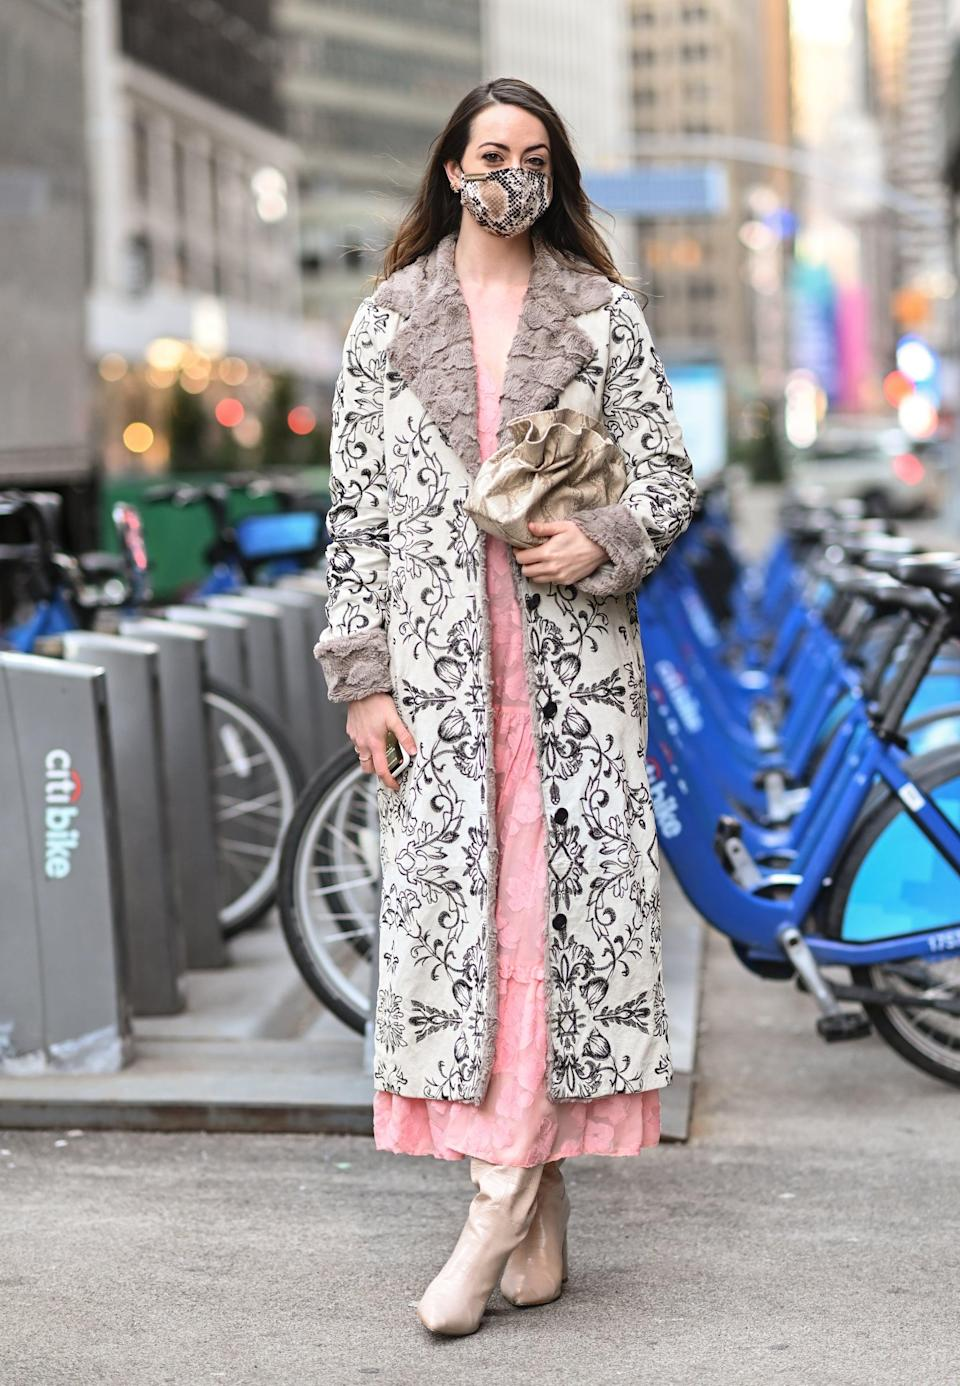 <p>The color scheme of this look works because of the soft palette. Sticking to similar tones allows you to mix in multiple prints and textures. Pro tip: long over long is an easy pairing for coats and dresses.</p>